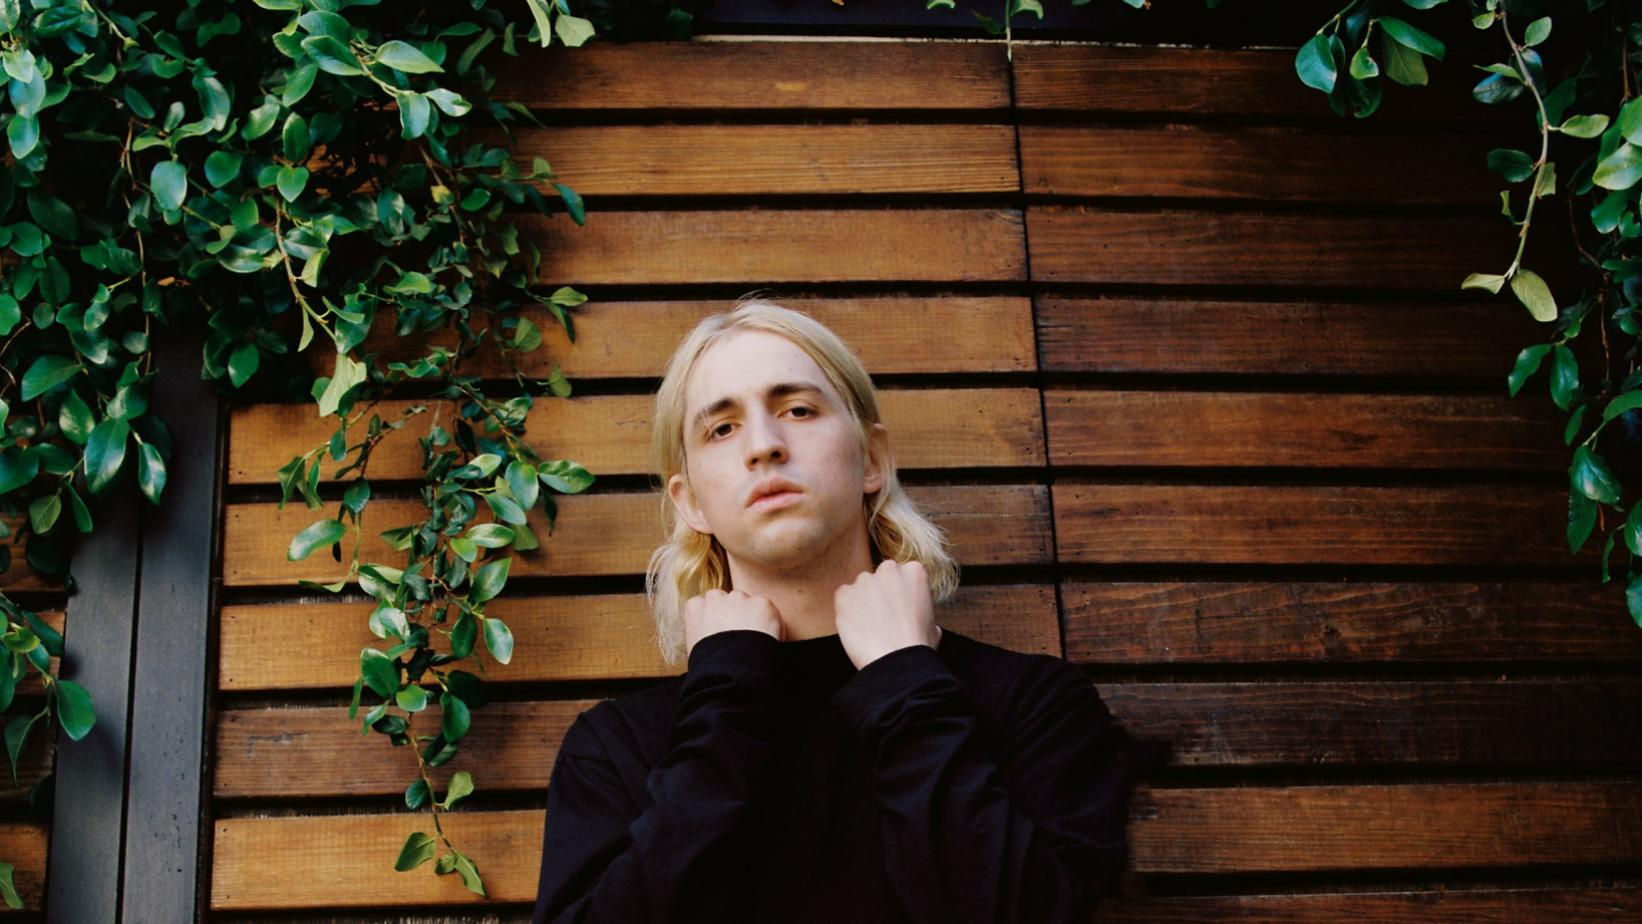 Porter Robinson poses in all-black, in front of a vine-covered fence